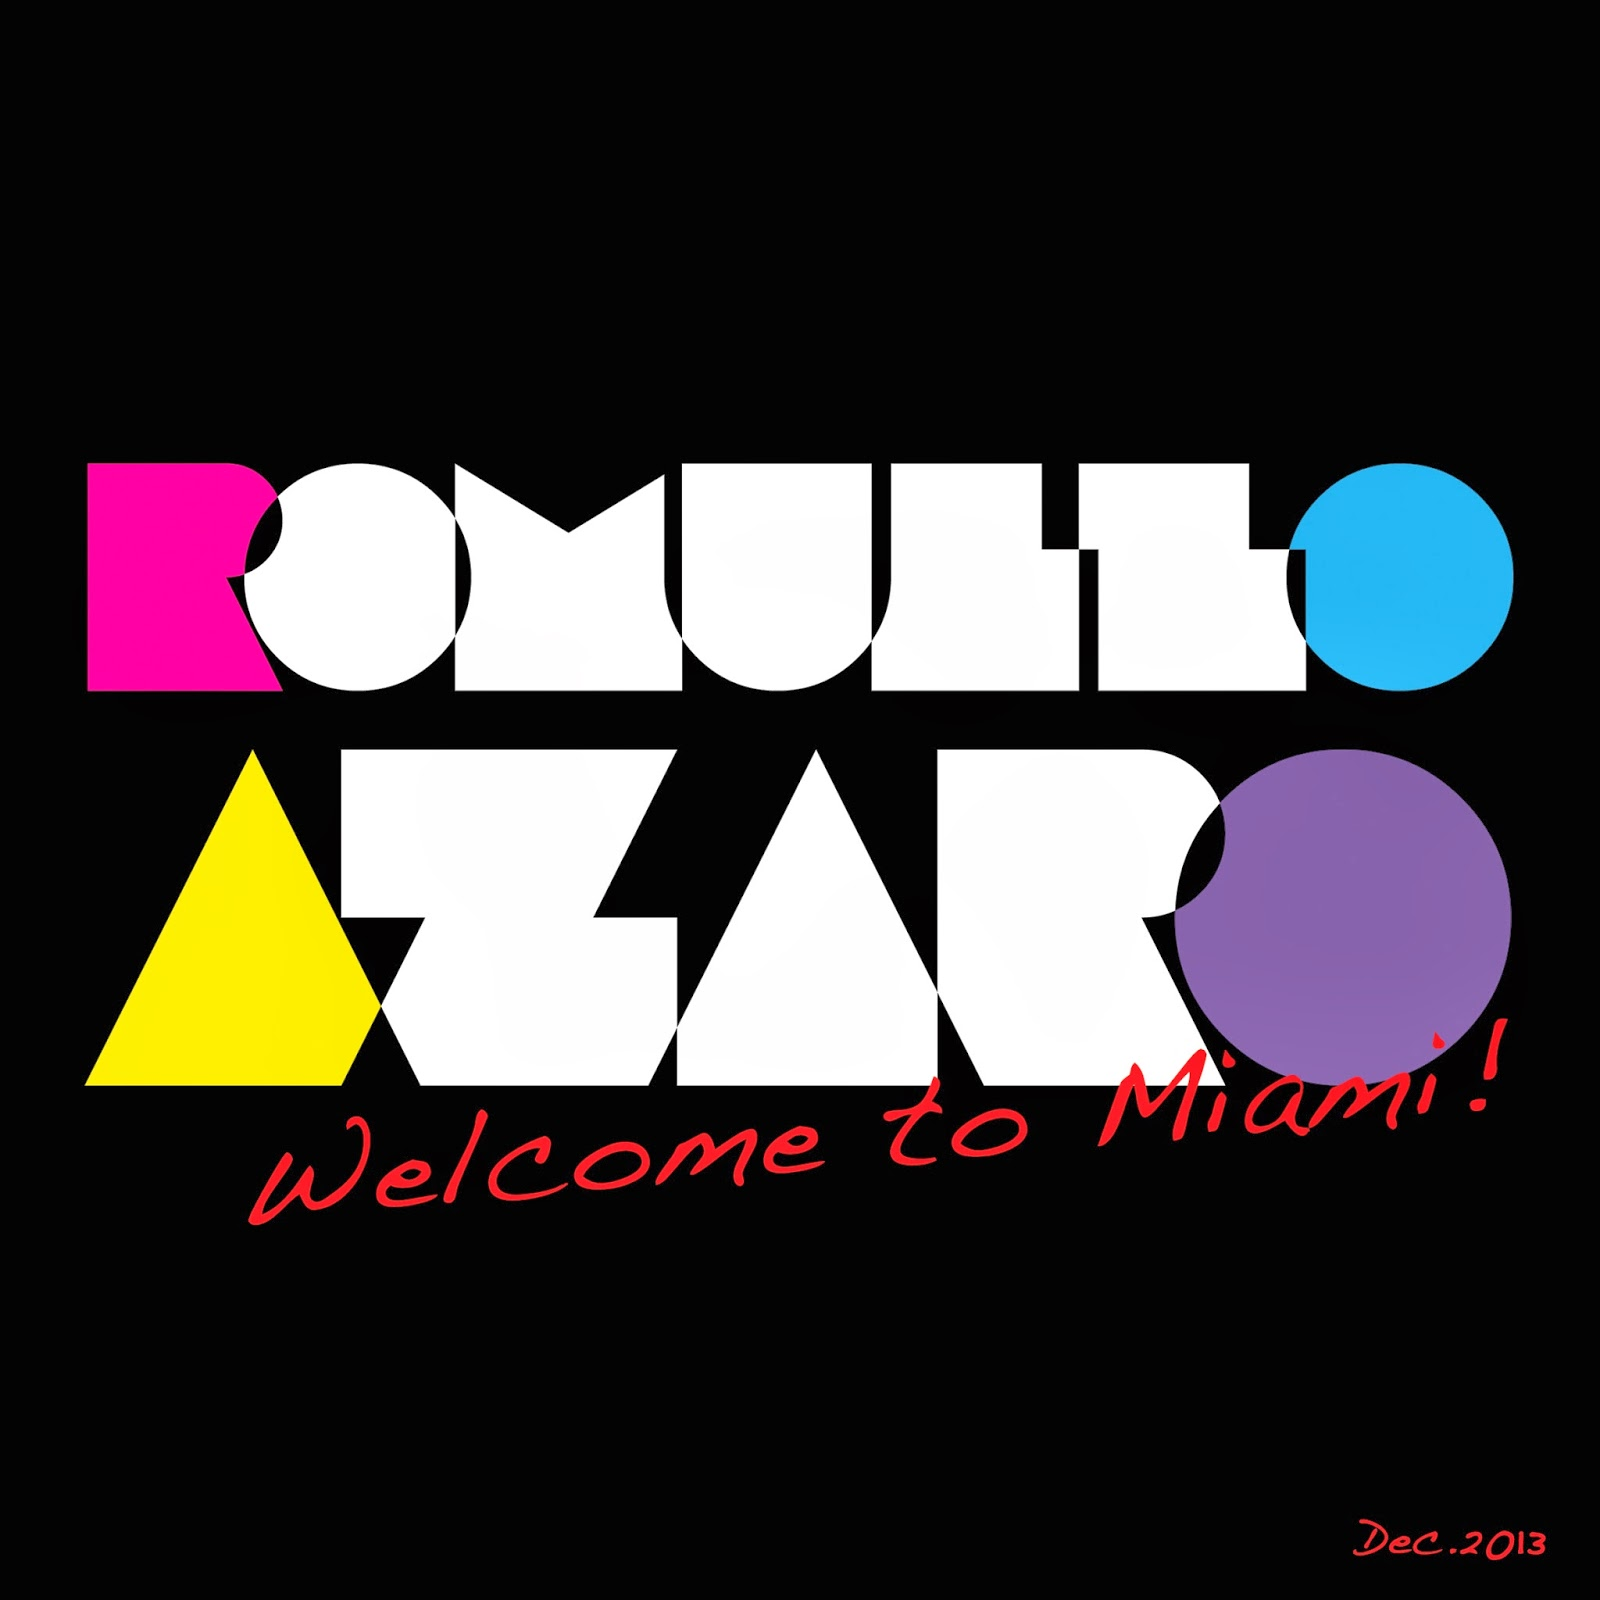 DJ Romullo Azaro - WELCOME TO MIAMI (DEC.2013)